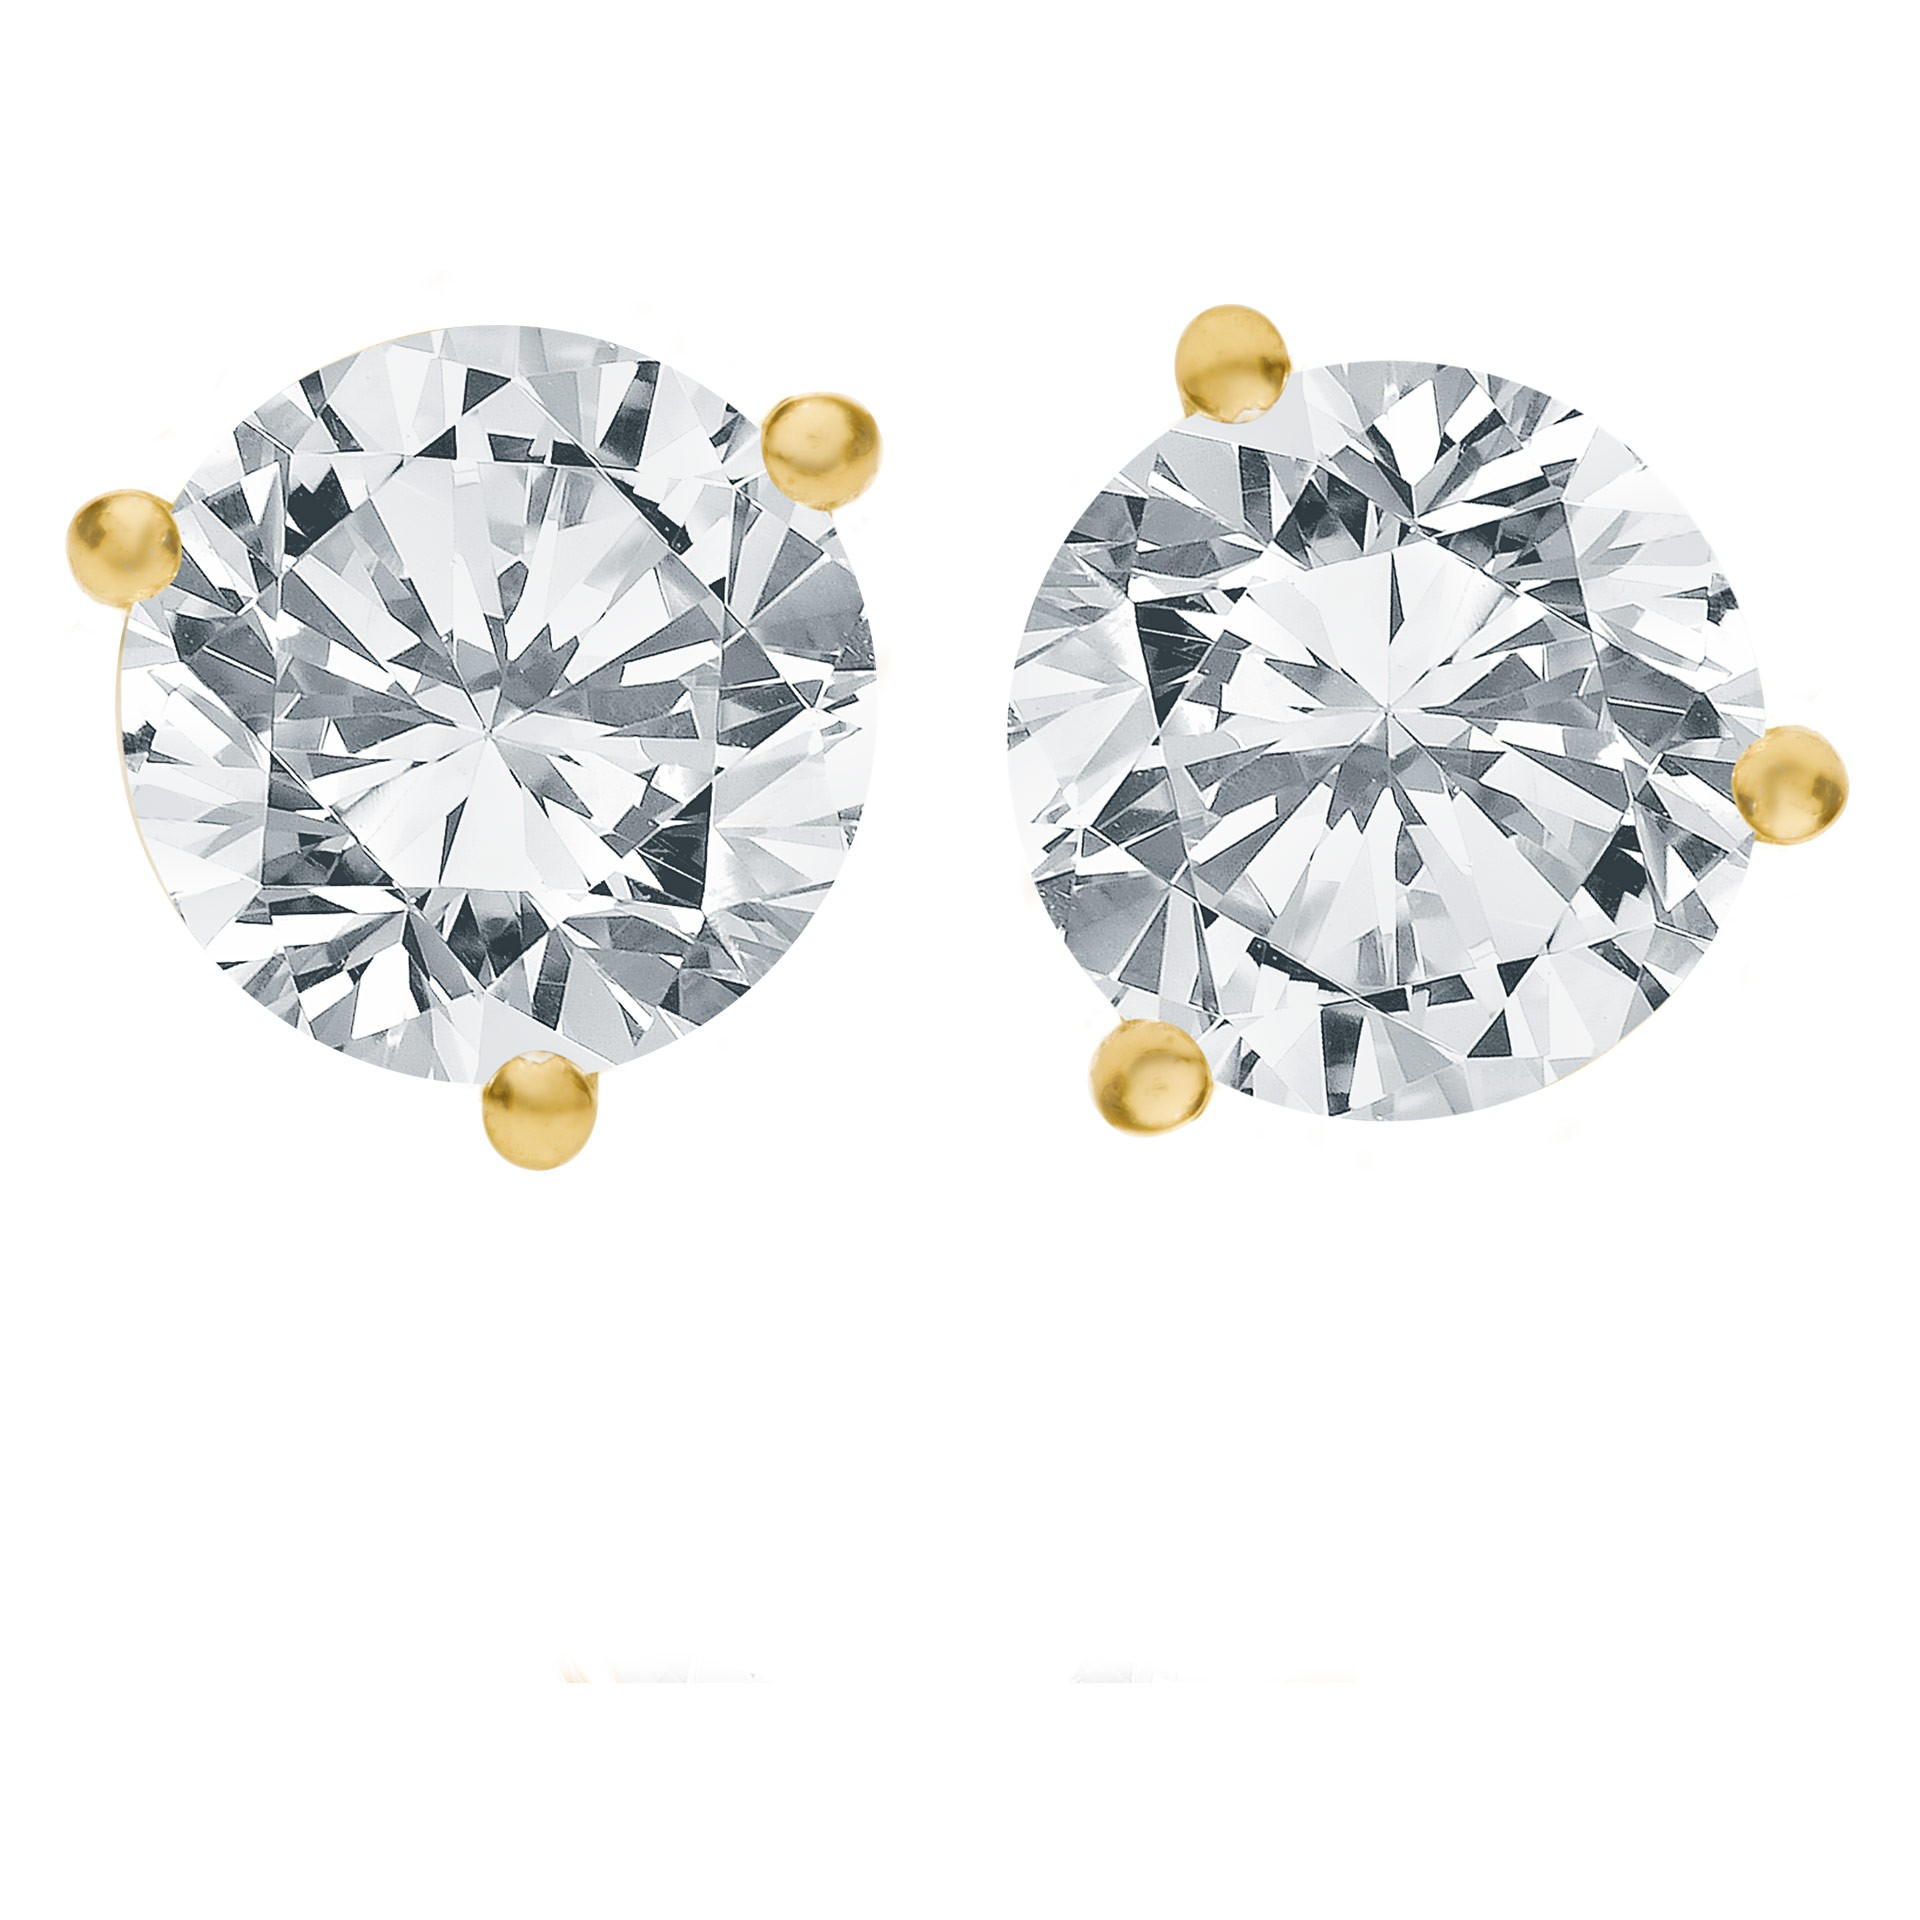 Magnificent Gia Certified Round Diamonds Studs H Color Clarity Jcolor Gia Certified Round Diamonds Studs H Color Clarity J Color Diamond Yellow G J Color Diamond G wedding diamonds J Color Diamond